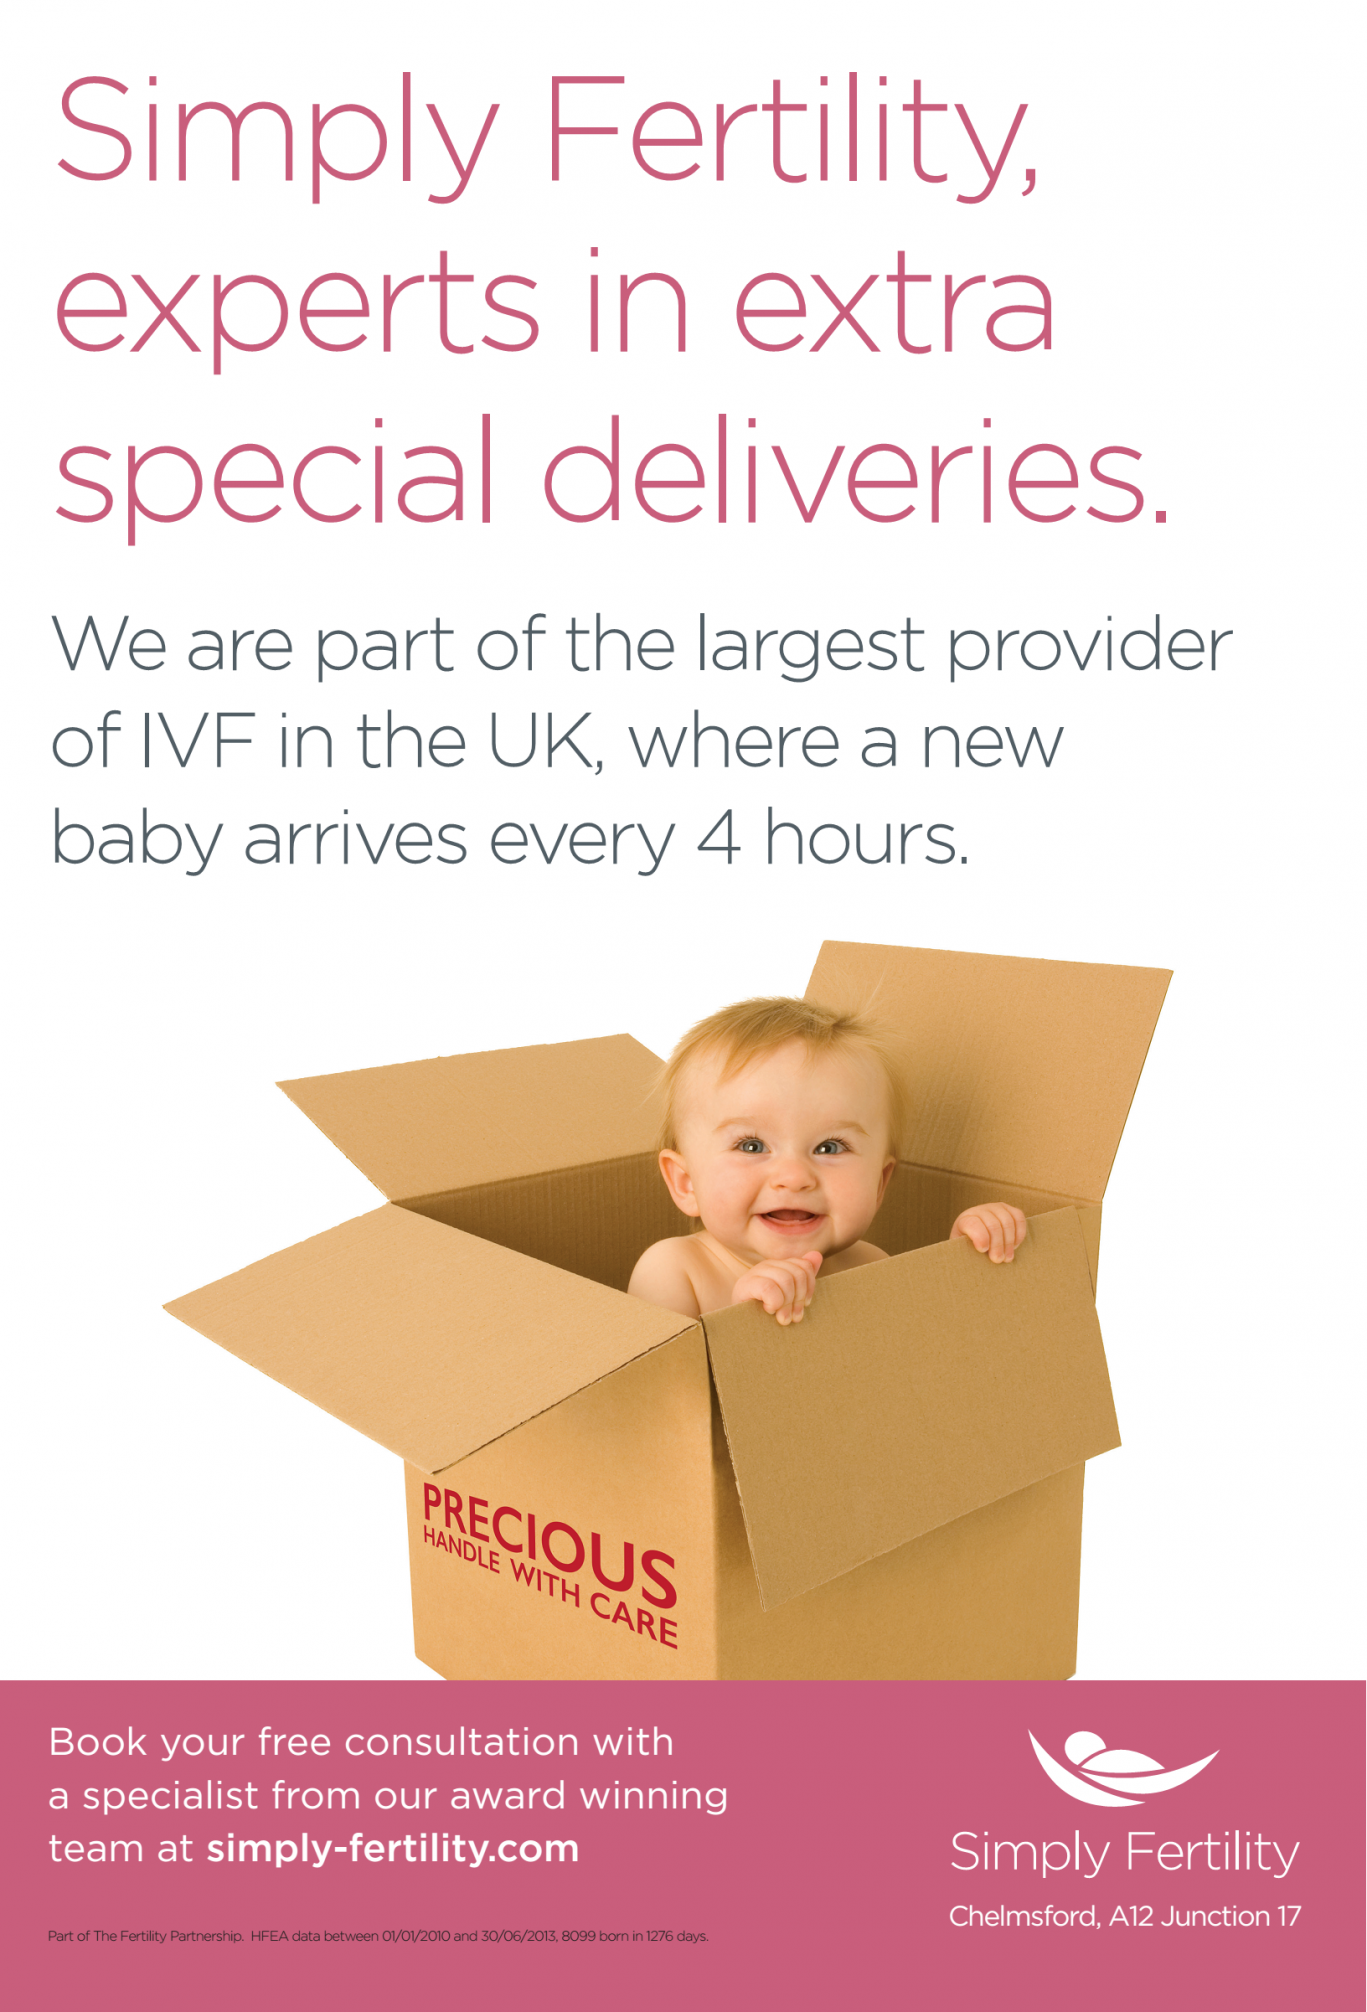 6 sheet – baby in box